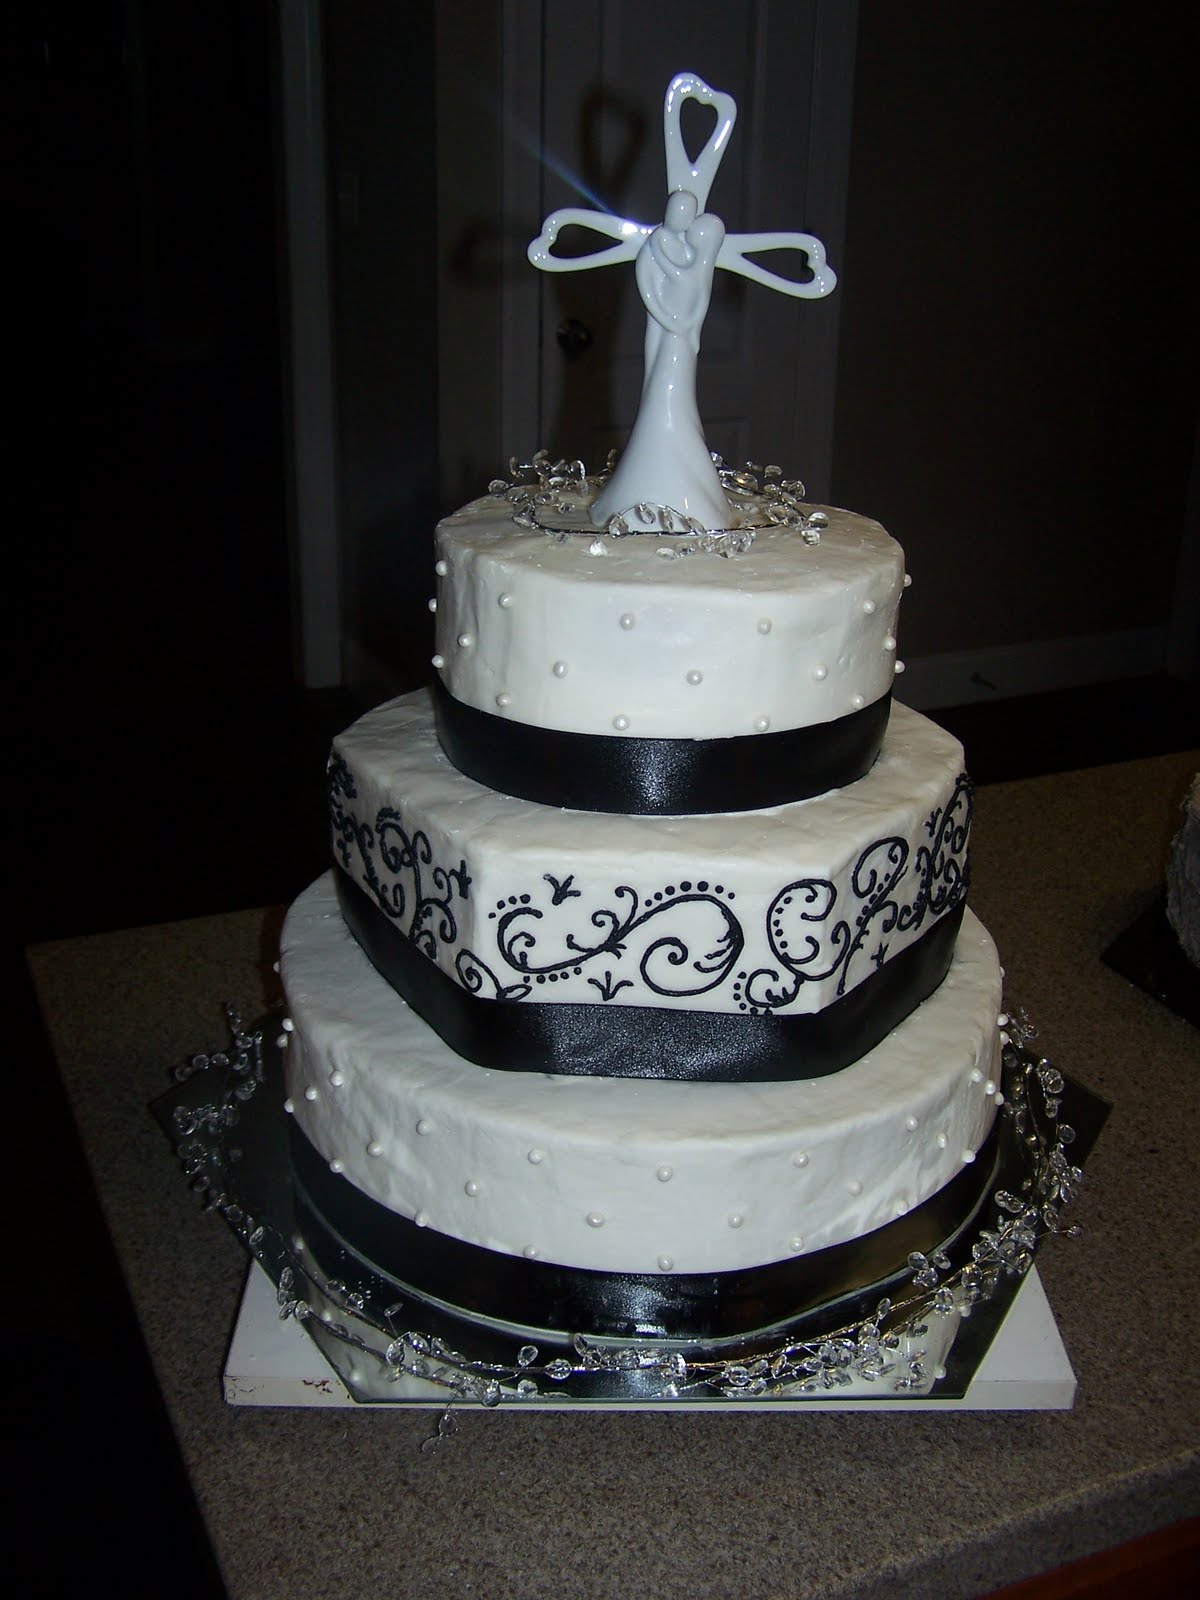 Creative Cakes N More Black and White Elegance Wedding Cake